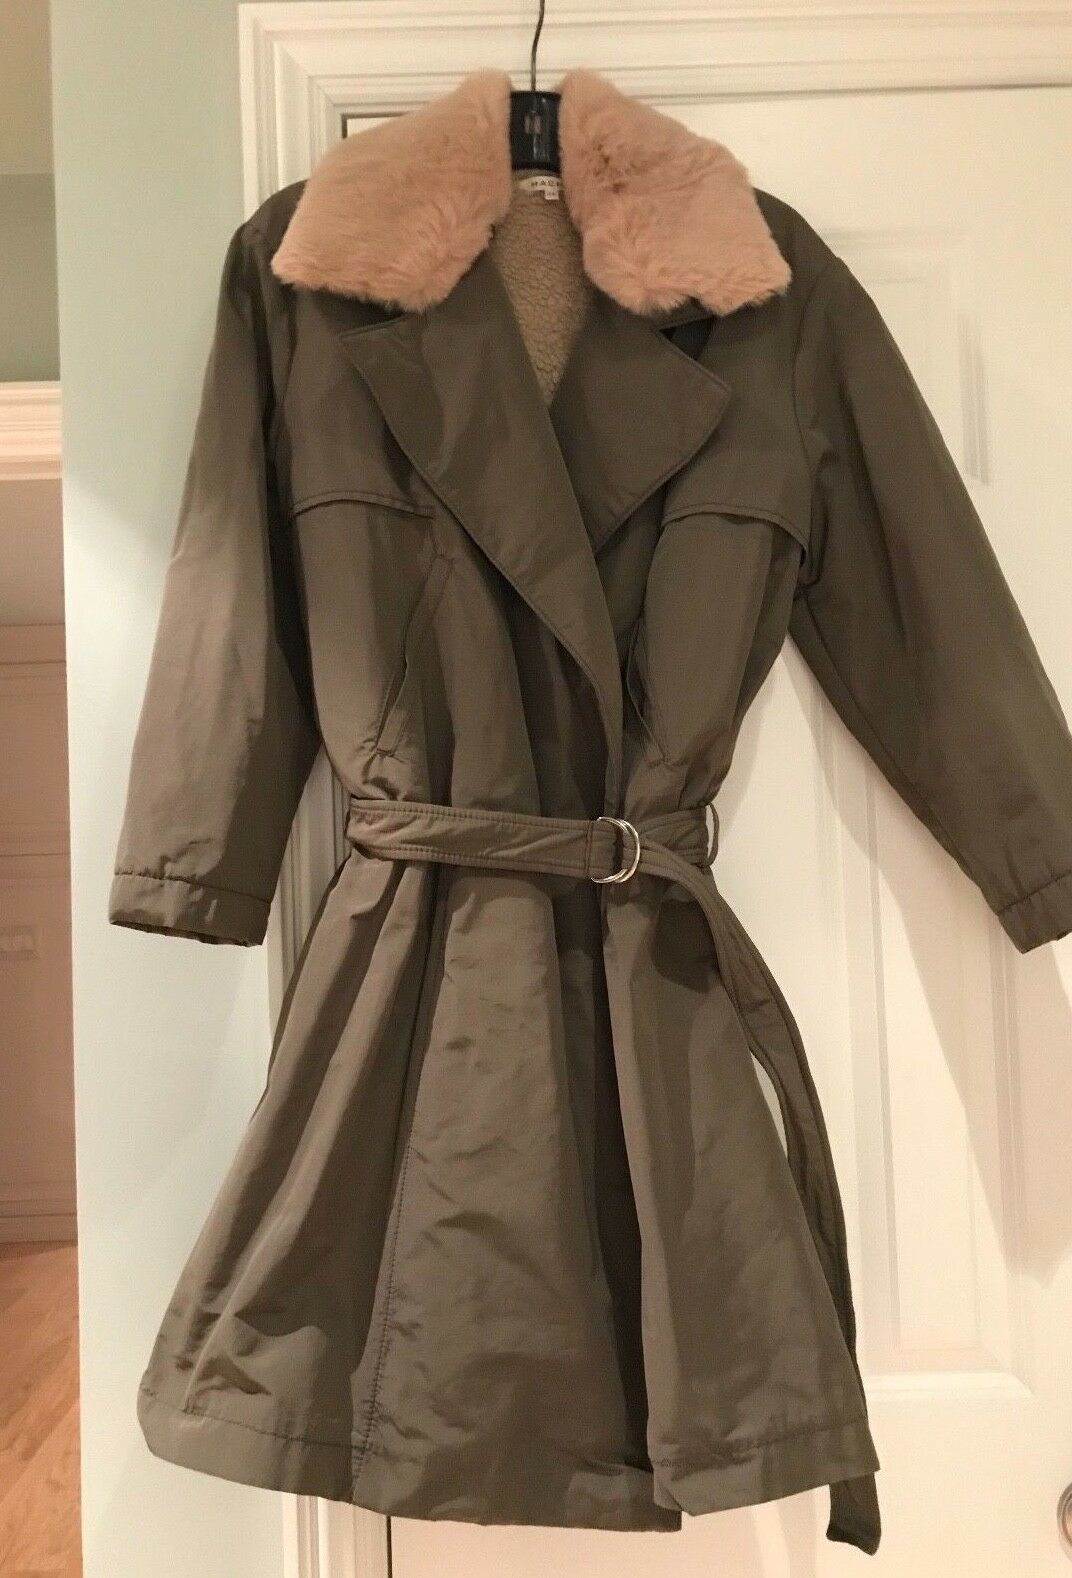 HACHE TRENCHCOAT-STYLE LINED WOMAN'S COAT W  2 FUR COLLARS - MSRP